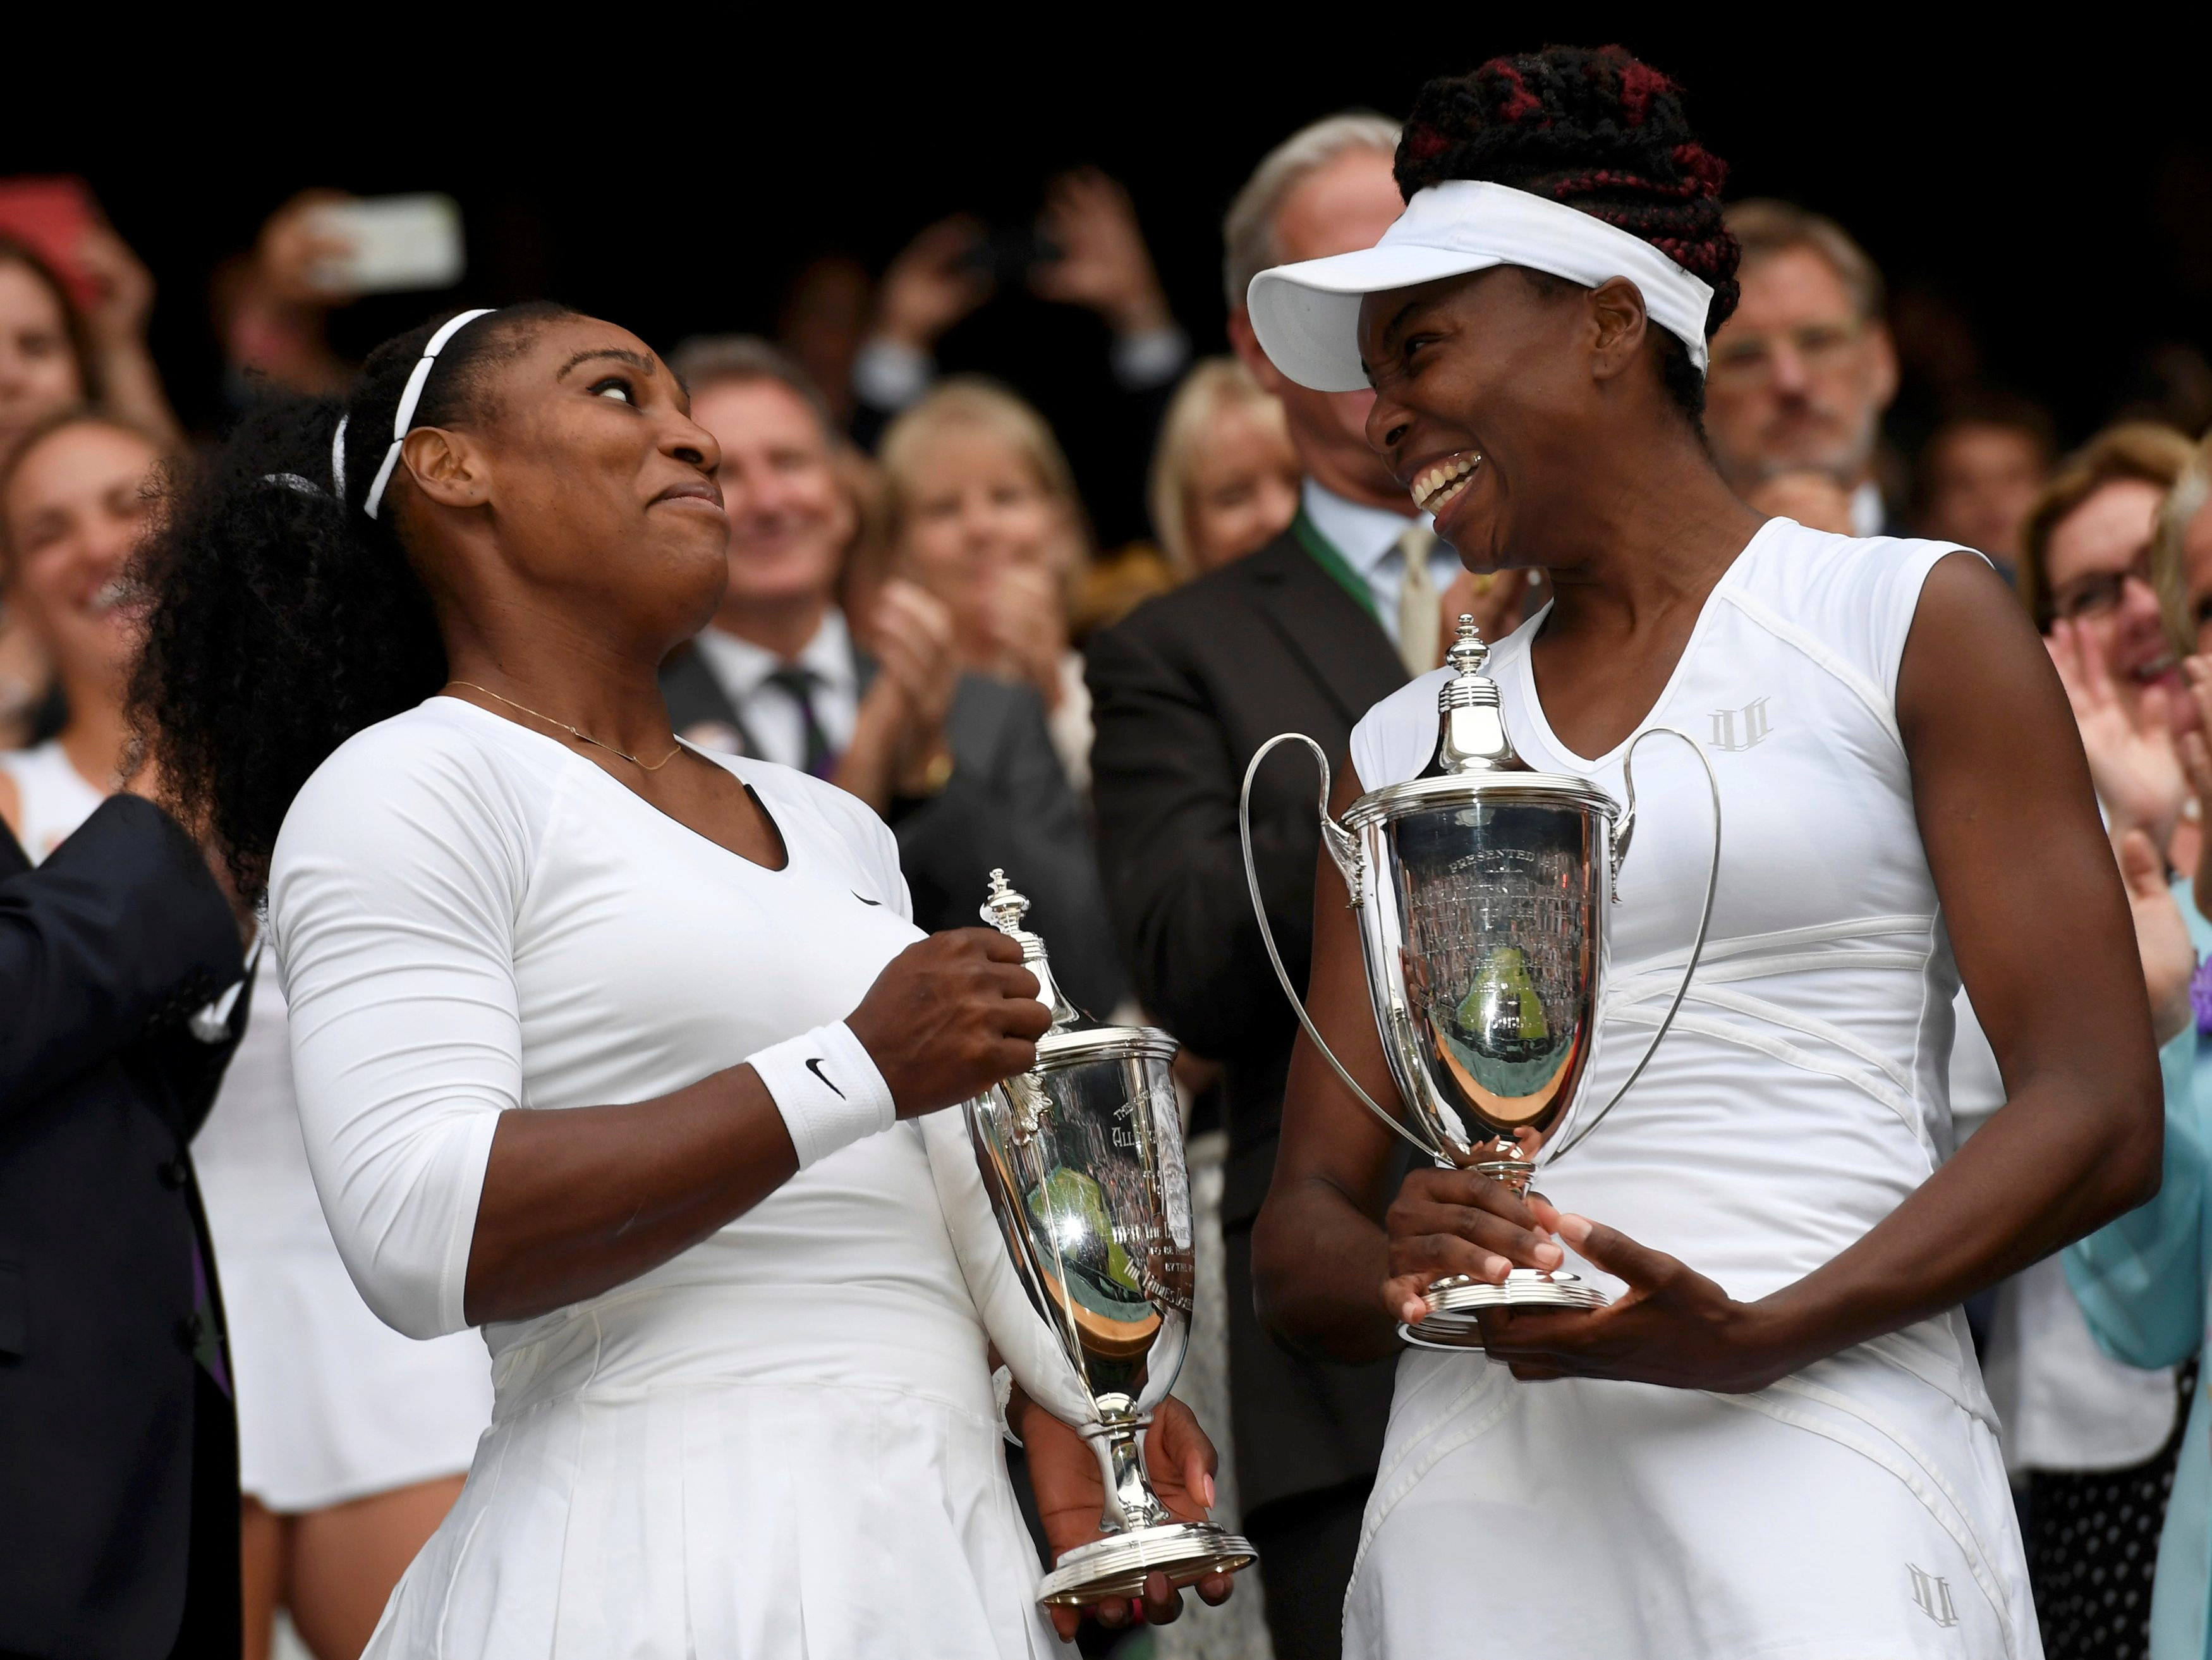 Britain Tennis - Wimbledon - All England Lawn Tennis & Croquet Club, Wimbledon, England - 9/7/16 USA's Serena Williams and Venus Williams celebrate winning their womens doubles final against Hungary's Timea Babos and Kazakhstan's Yaroslava Shvedova with the trophies REUTERS/Tony O'Brien